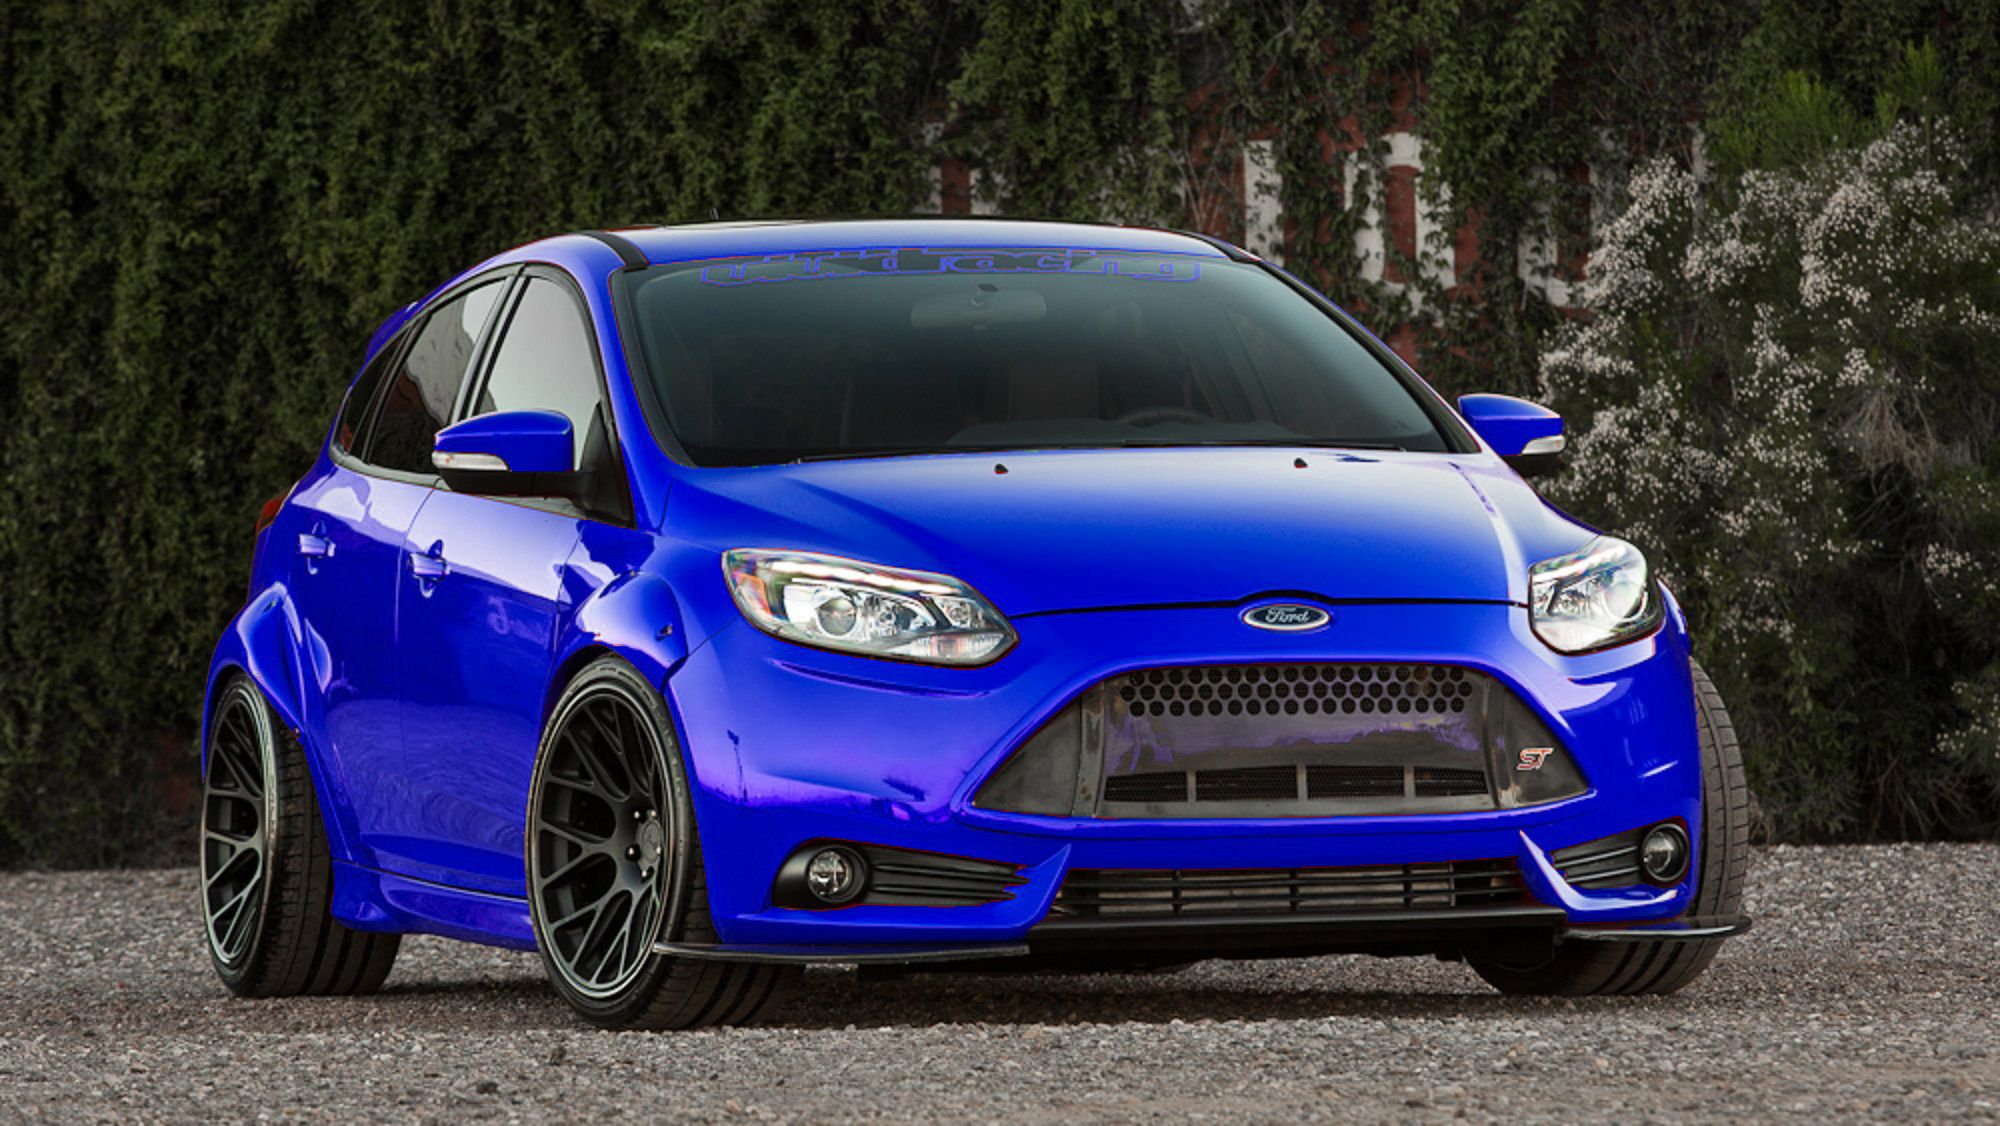 1000 images about ford focus st on pinterest cars roush stage 3 and wheels - Ford Focus St 2015 Blue